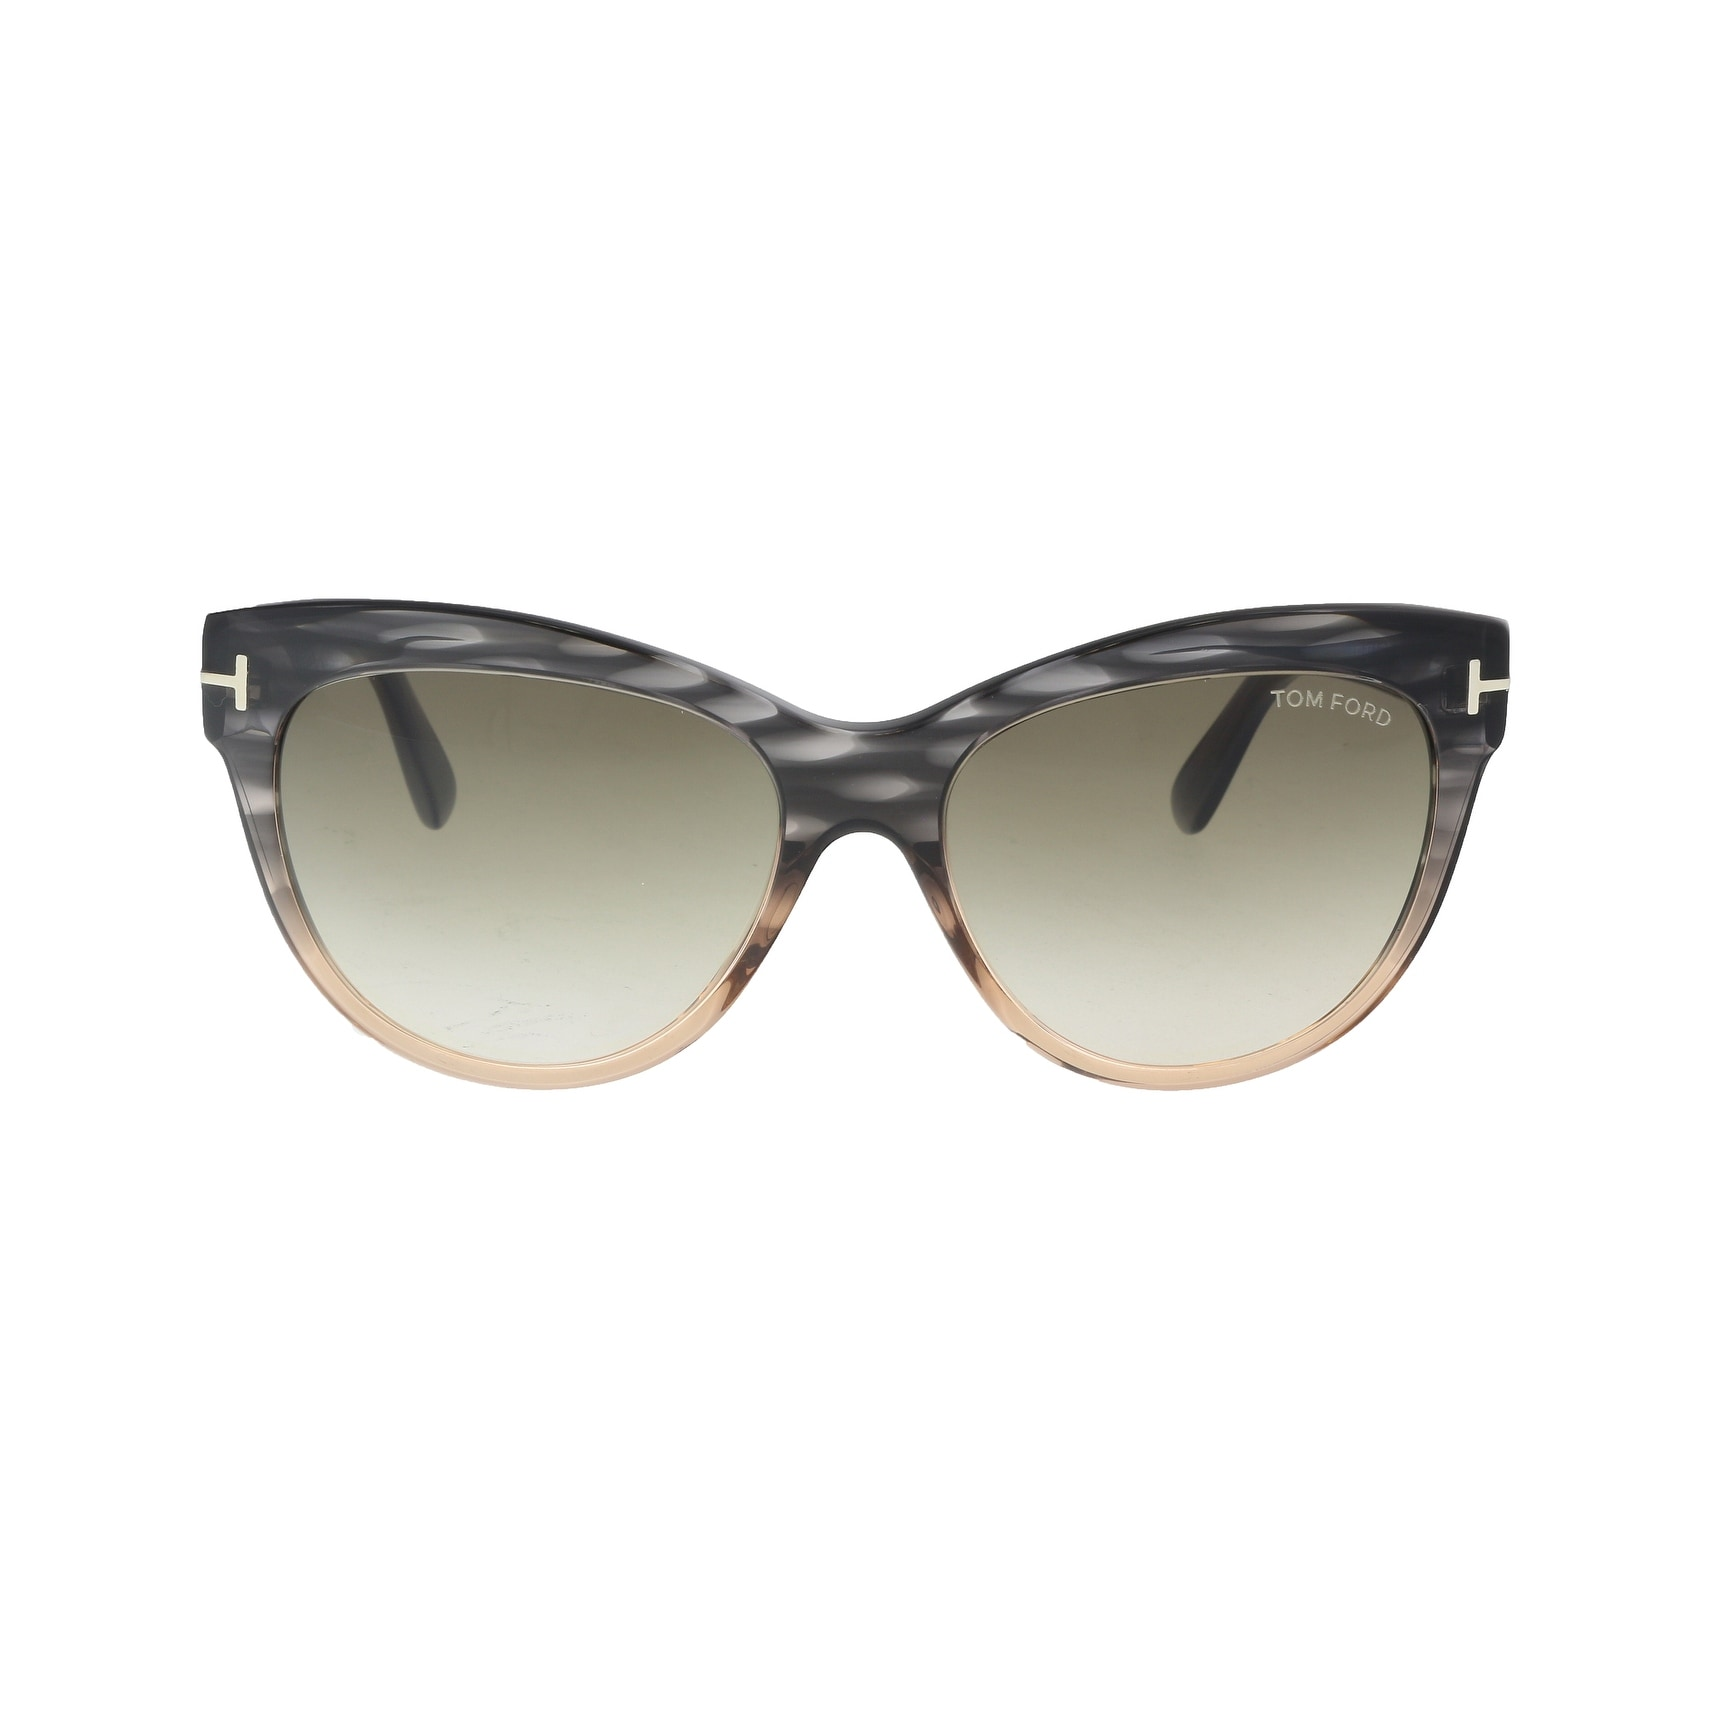 933e2dcf51 Shop Tom Ford FT0430 S 20P LILY CHARCOAL LIGHT CORAL Cateye Sunglasses -  Grey - 56-16-140 - Free Shipping Today - Overstock - 19223125